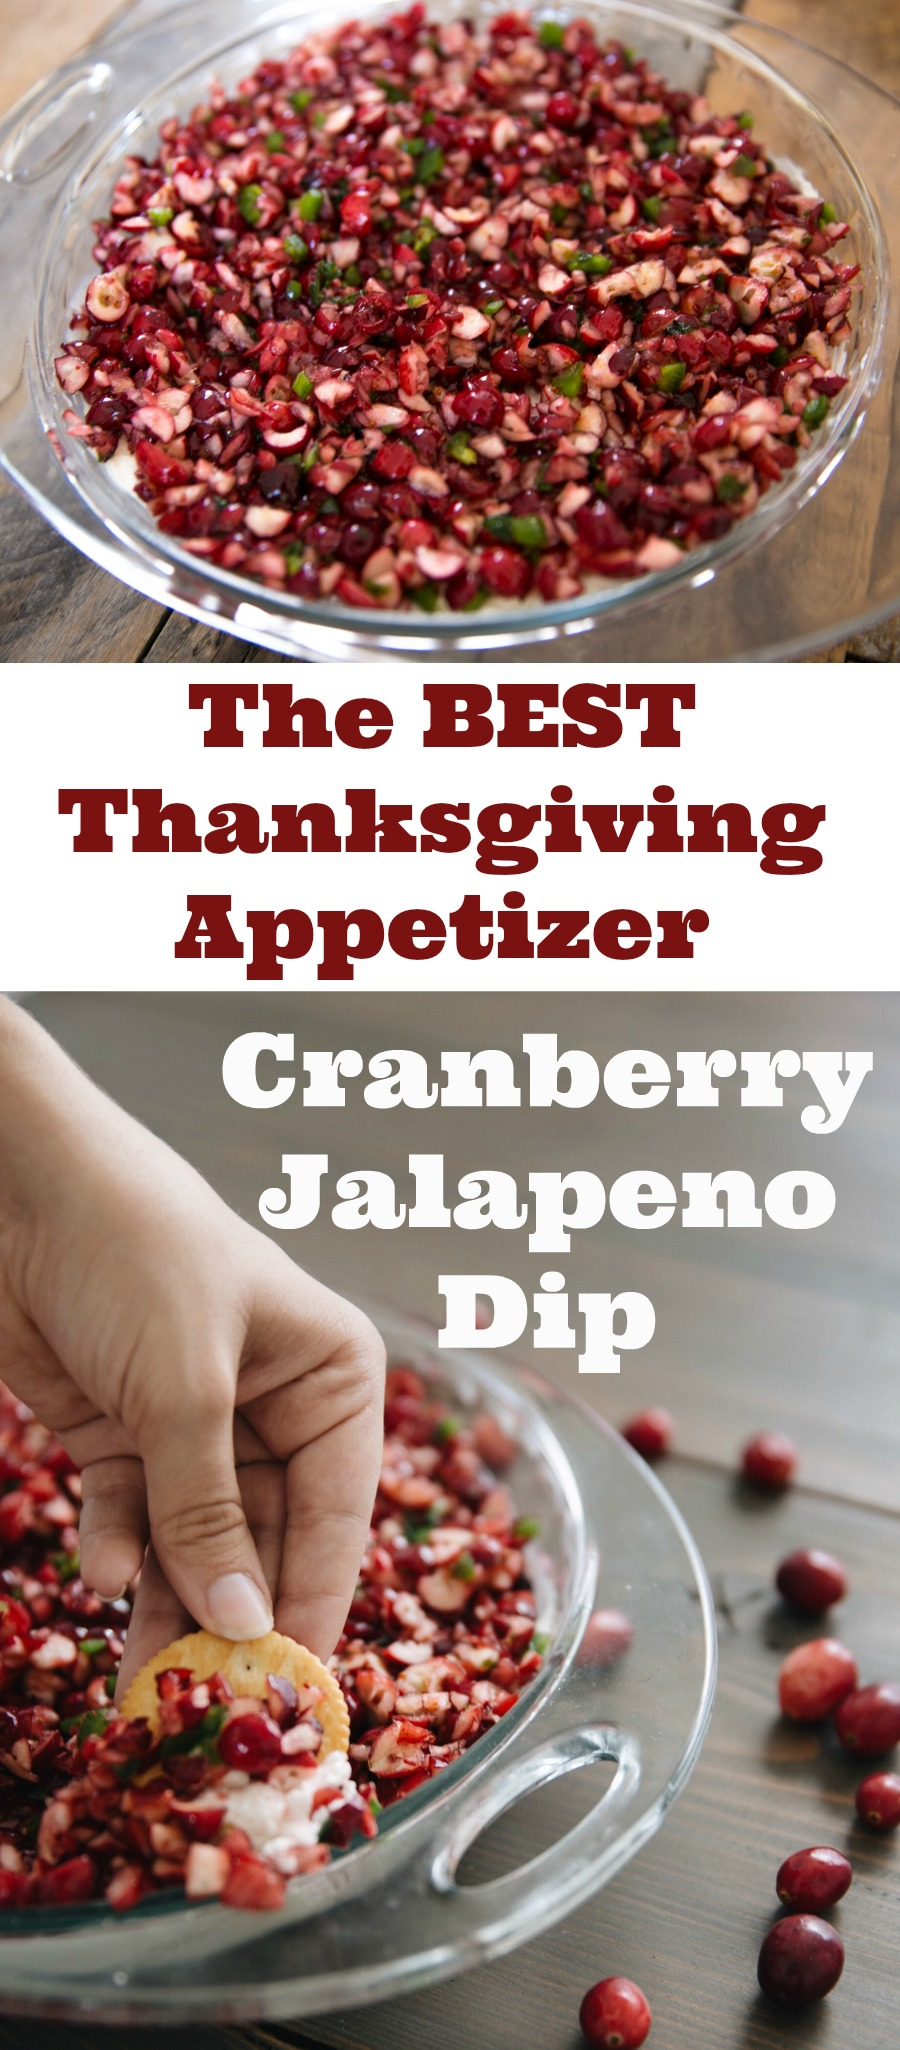 Everyone who eats this dip asks for the recipe. It's one of the best appetizers I've had in a long time – cranberry, jalapeno,